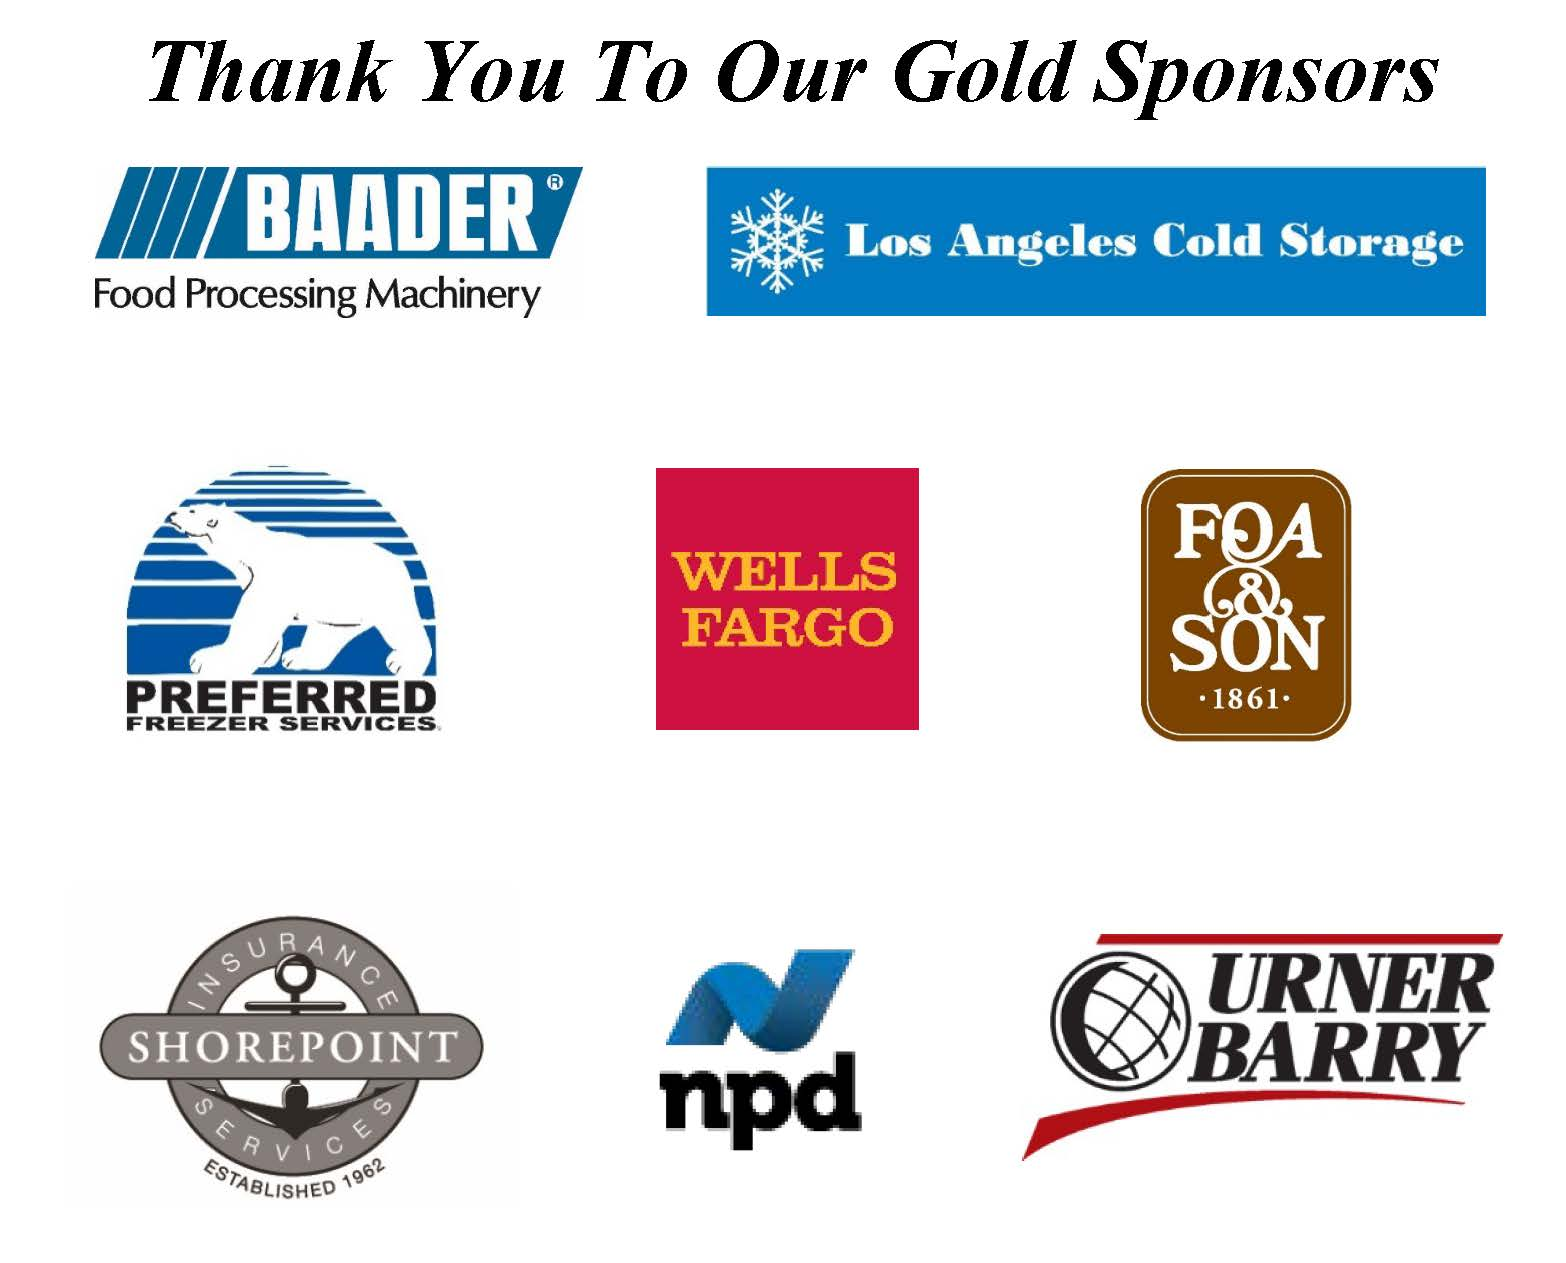 Thank you to our Gold Sponsors_2019 without RC